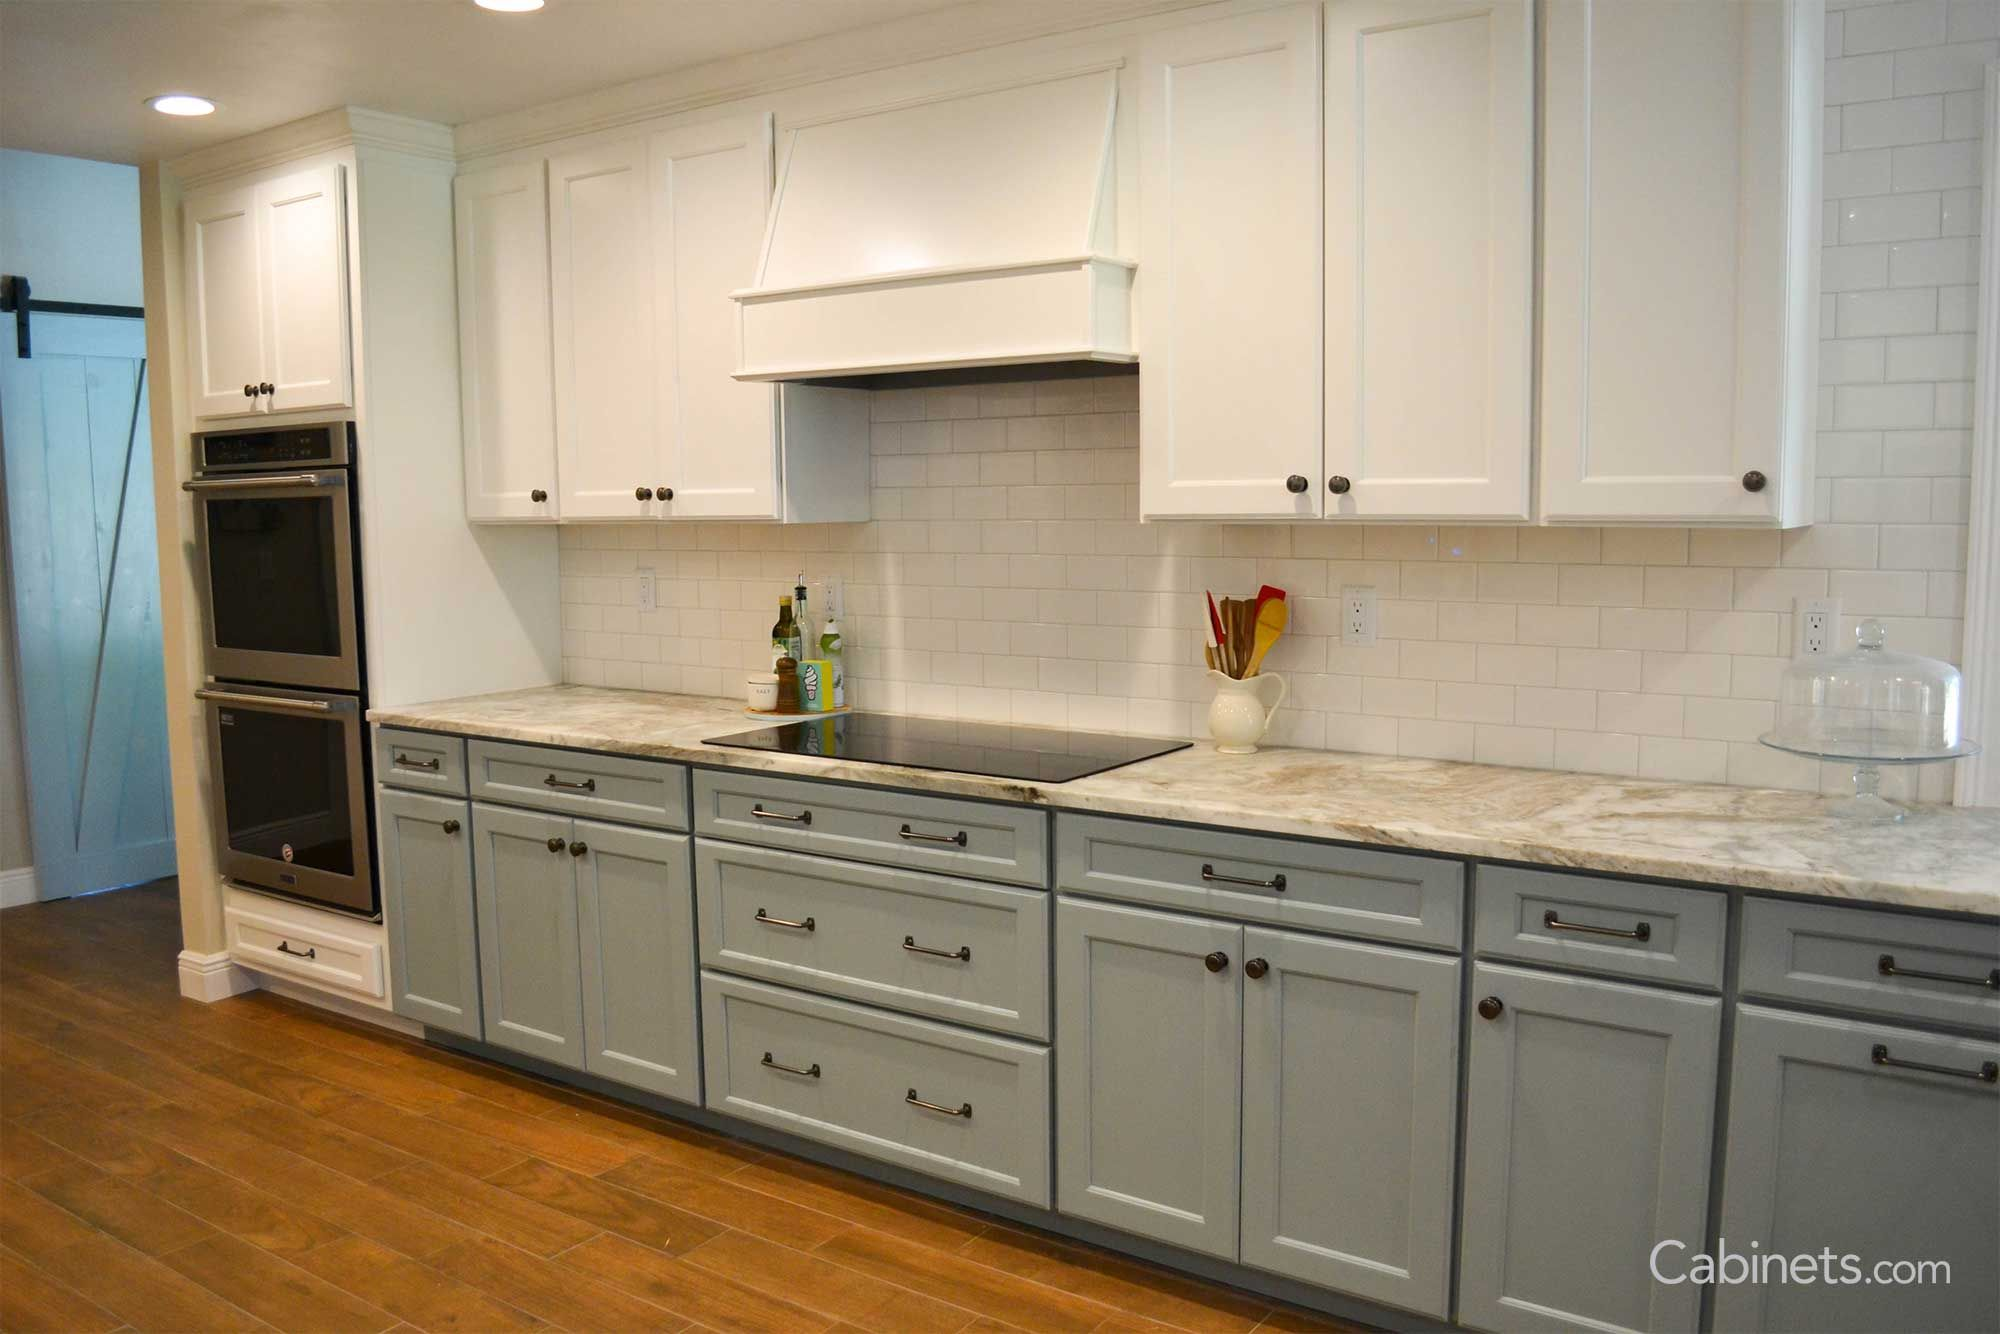 Coastal Two Tone Galley Kitchen With Wood Hood Cabinets Com In 2020 Kitchen Cabinets Kitchen Renovation Kitchen Cabinet Trends